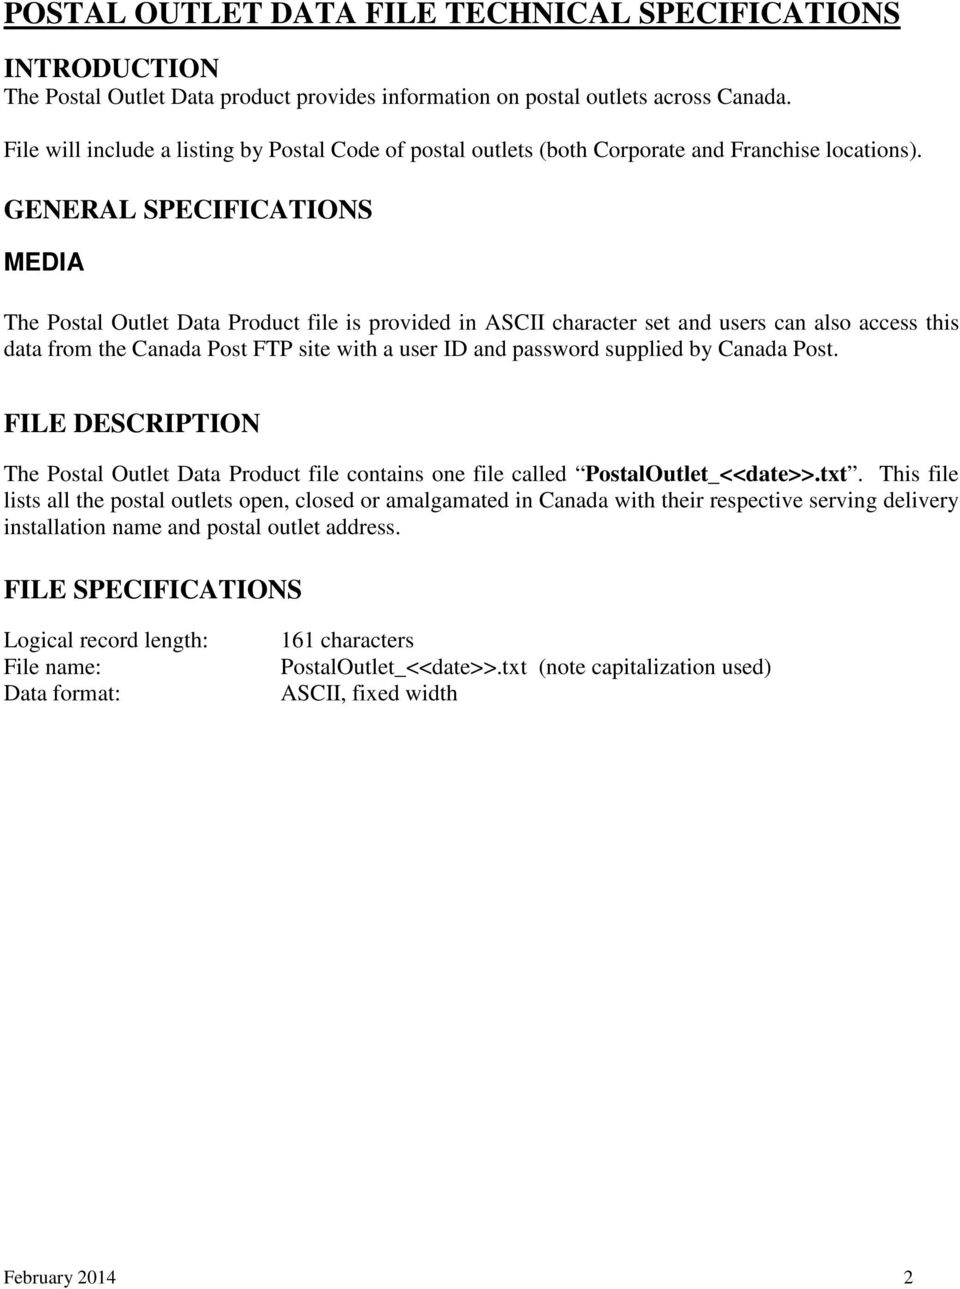 GENERAL SPECIFICATIONS MEDIA The Postal Outlet Data Product file is provided in ASCII character set and users can also access this data from the Canada Post FTP site with a user ID and password